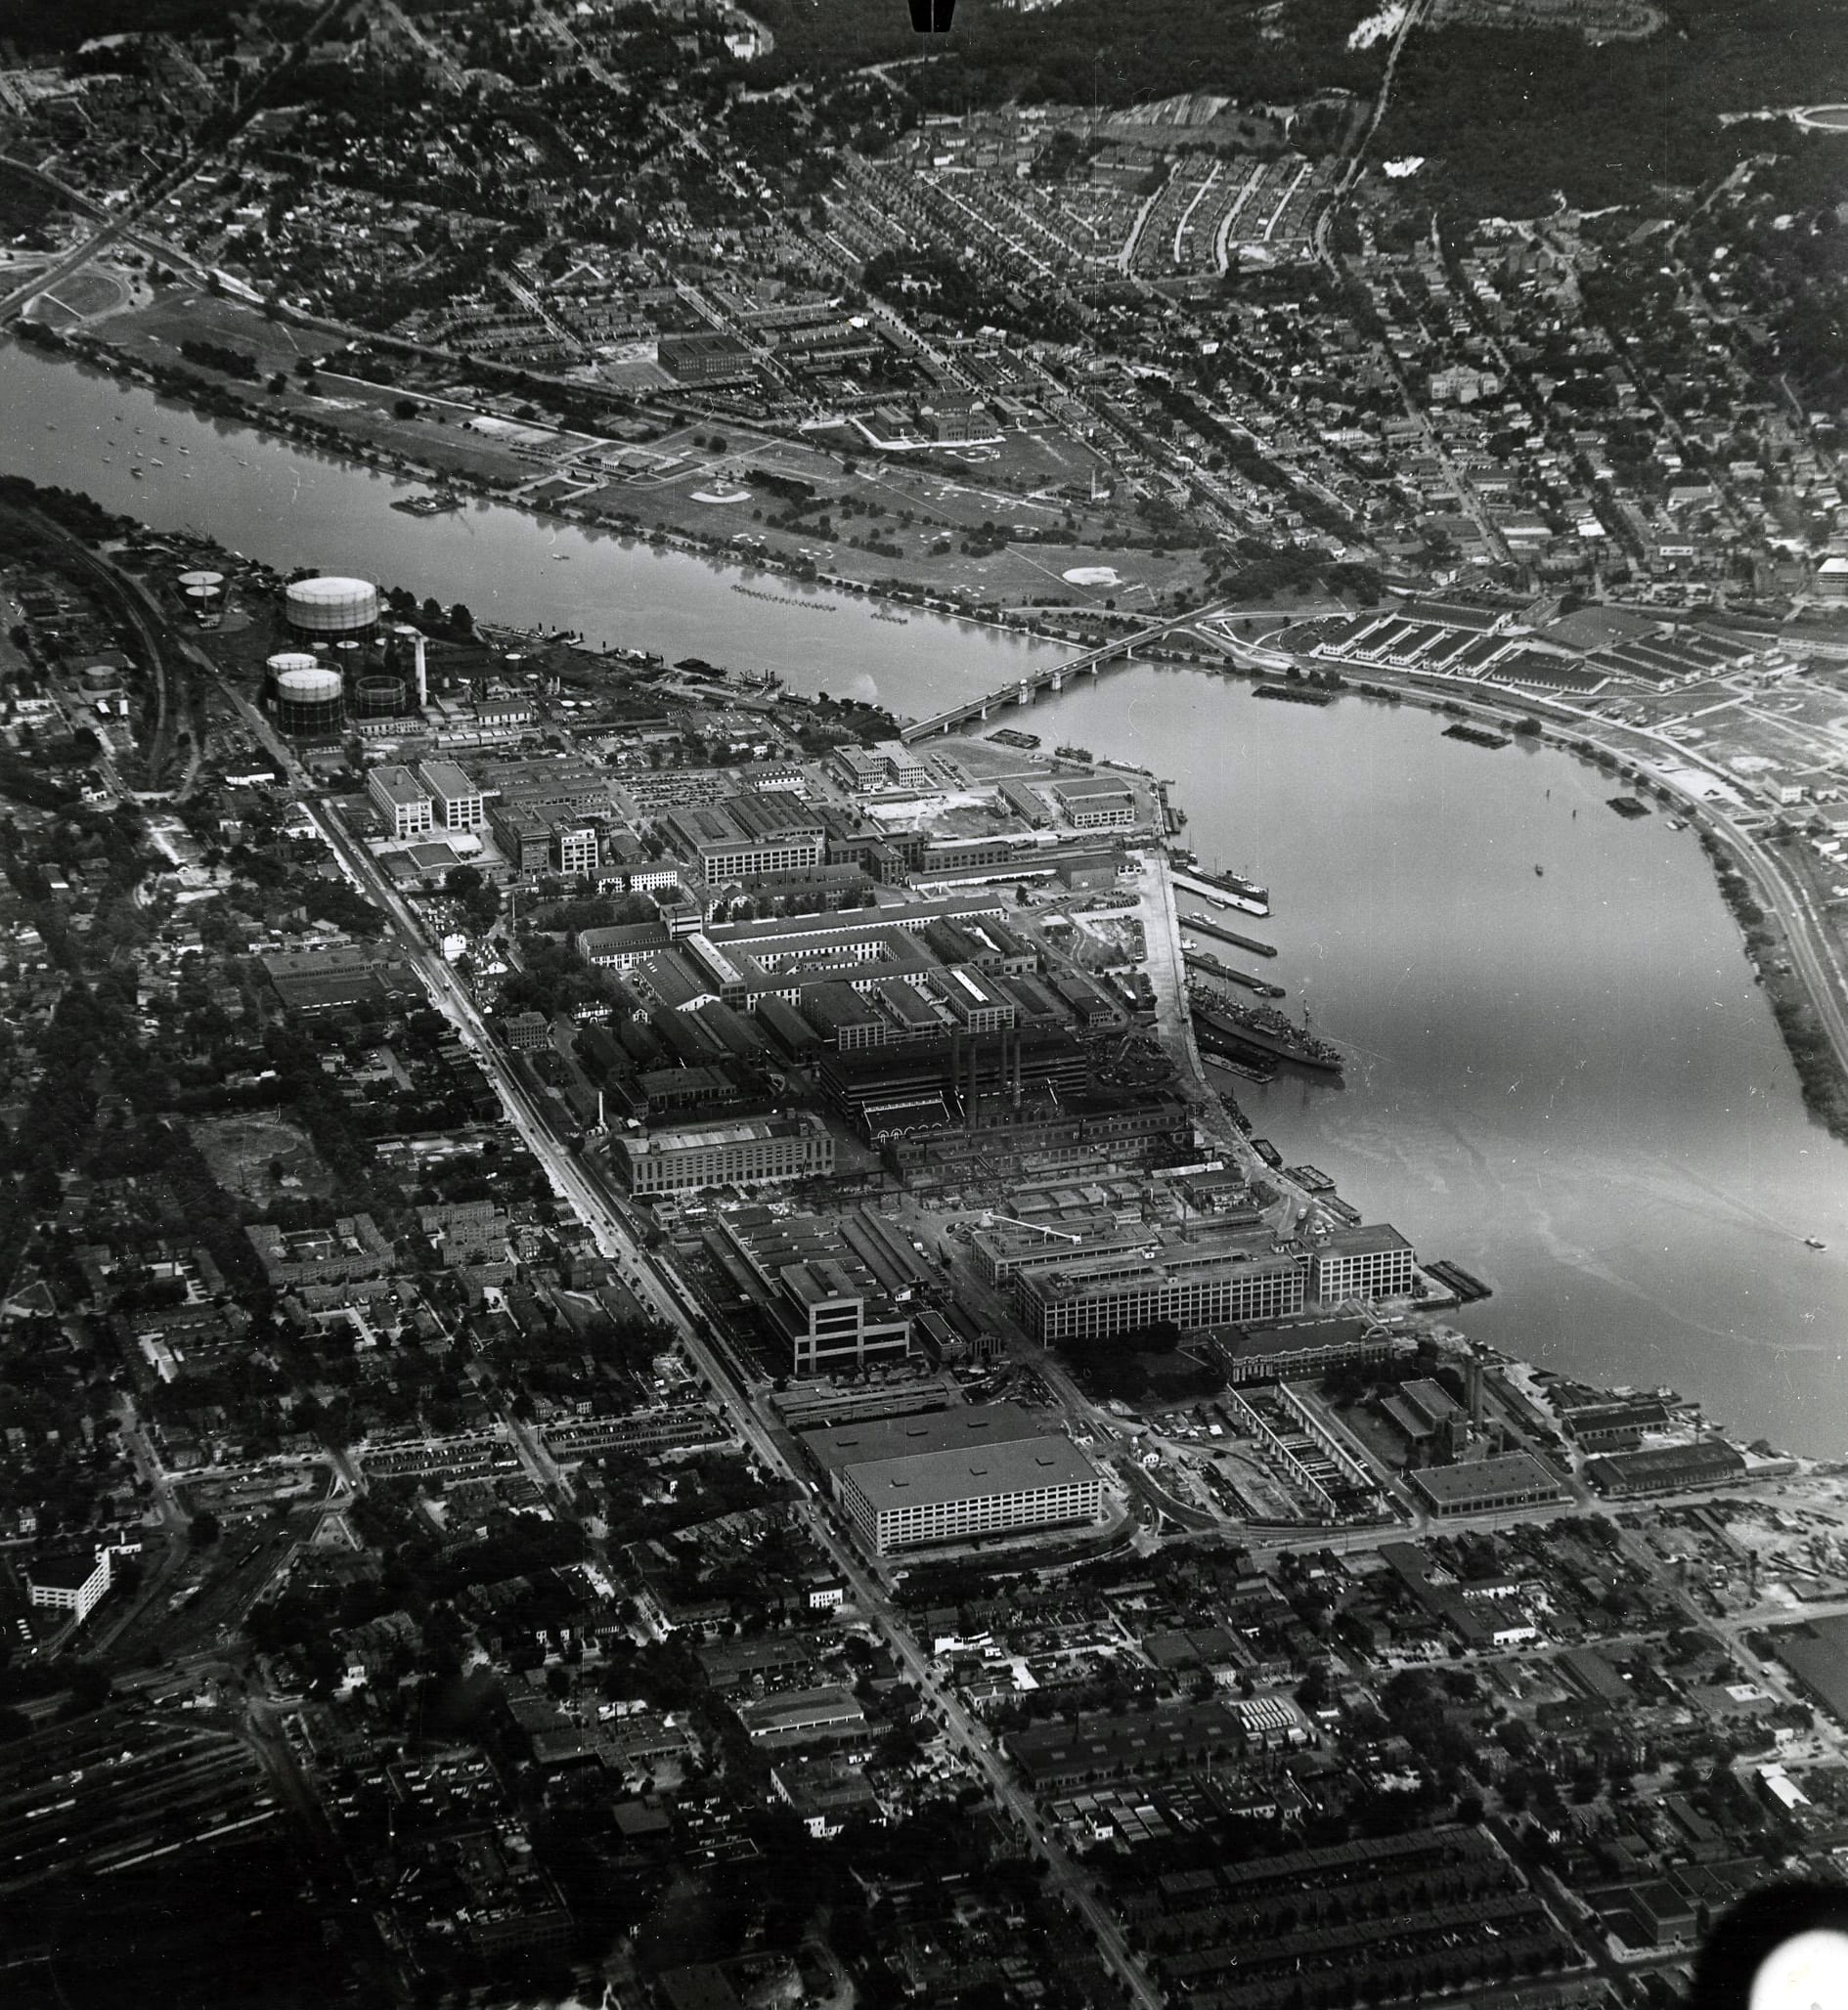 Aerial view, looking east, of the Washington Navy Yard, Washington, D.C., with the Anacostia River in the right view, circa mid-1980s. Note, USS Barry (DD 993) moored to the pier. NHHC Photograph Collection, Navy Subject Files, Washington Navy Yard. (221).